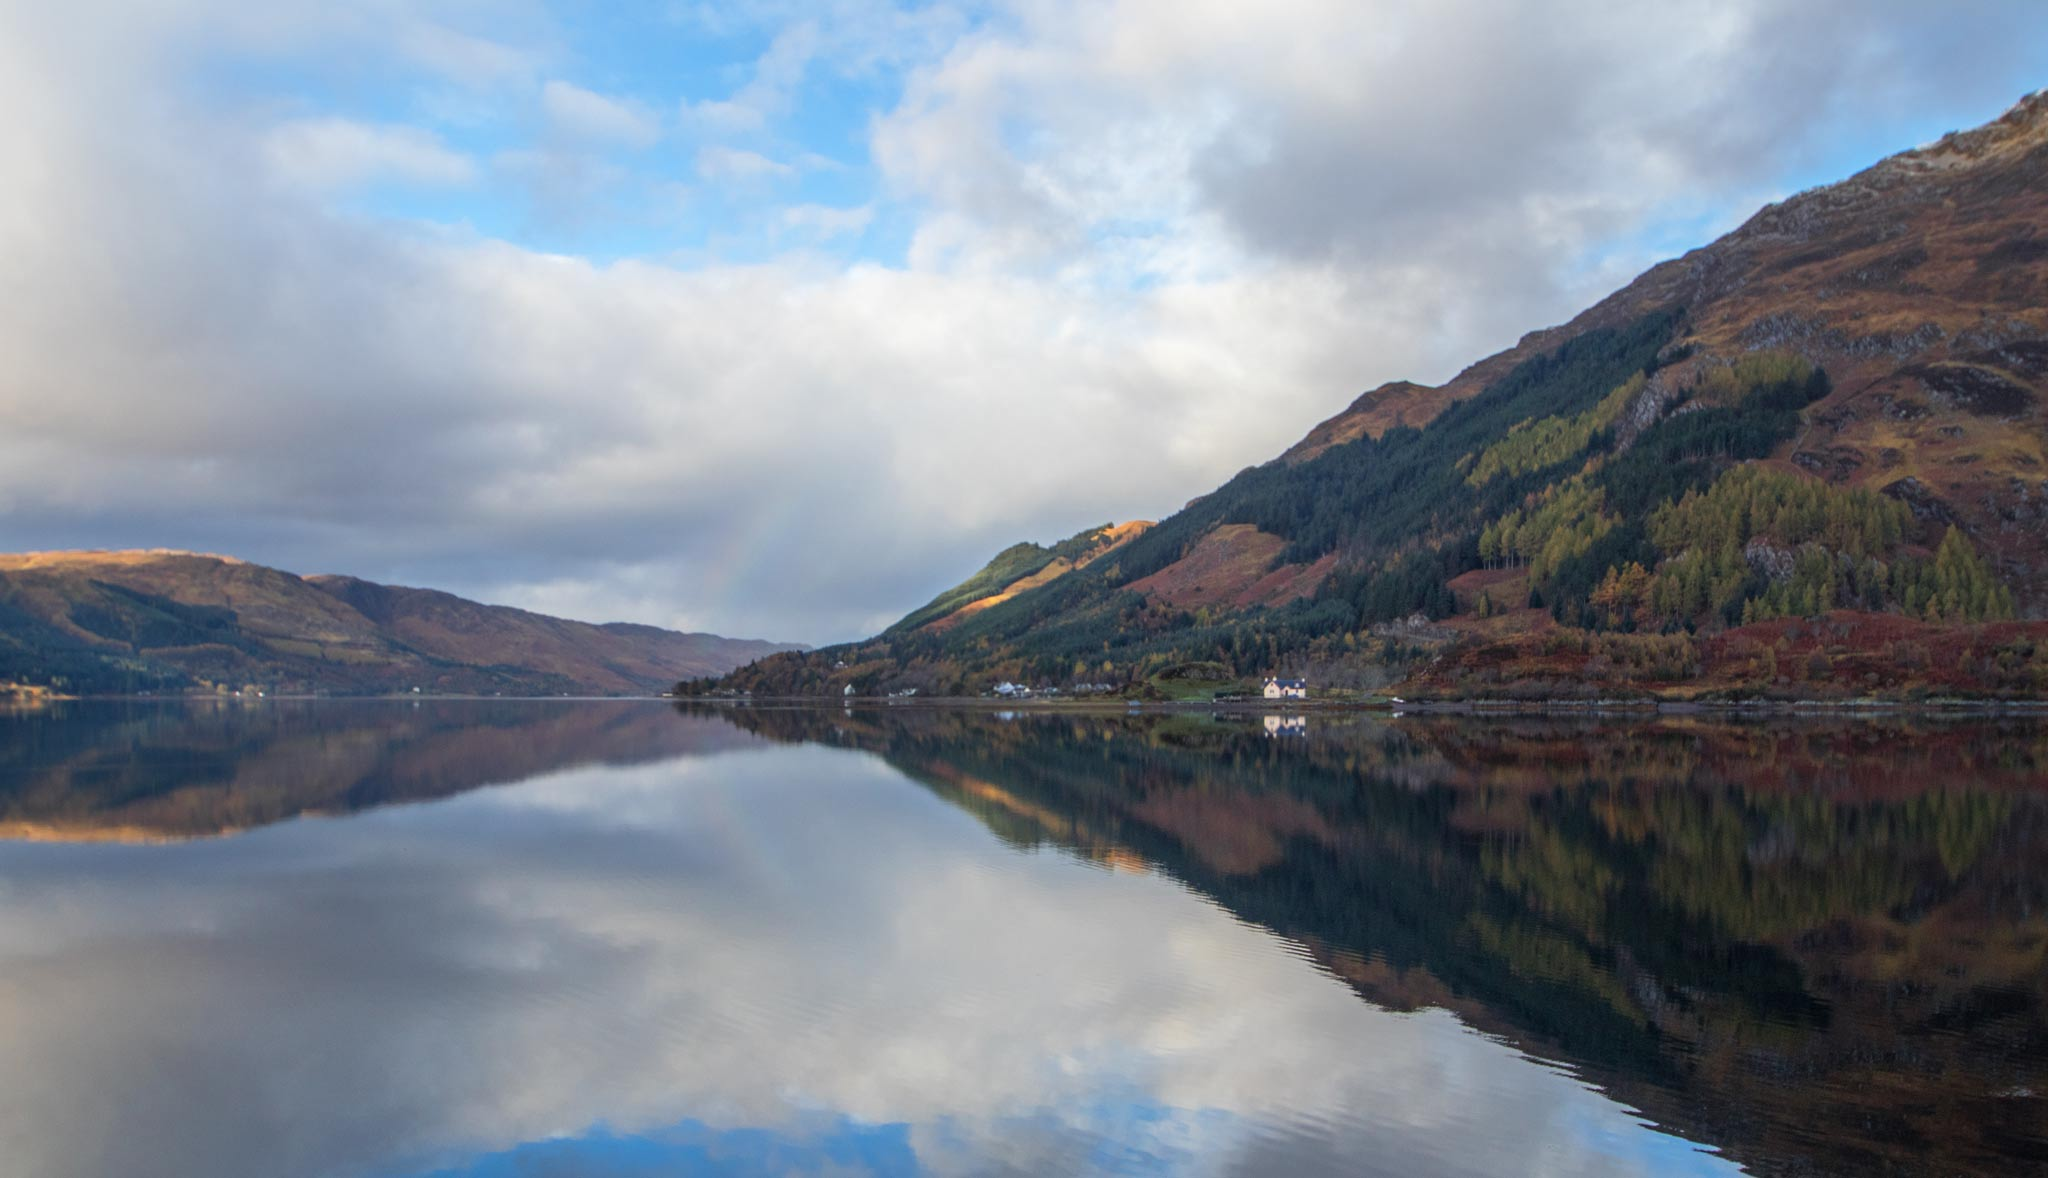 Reflections on Loch Duich Scotland.